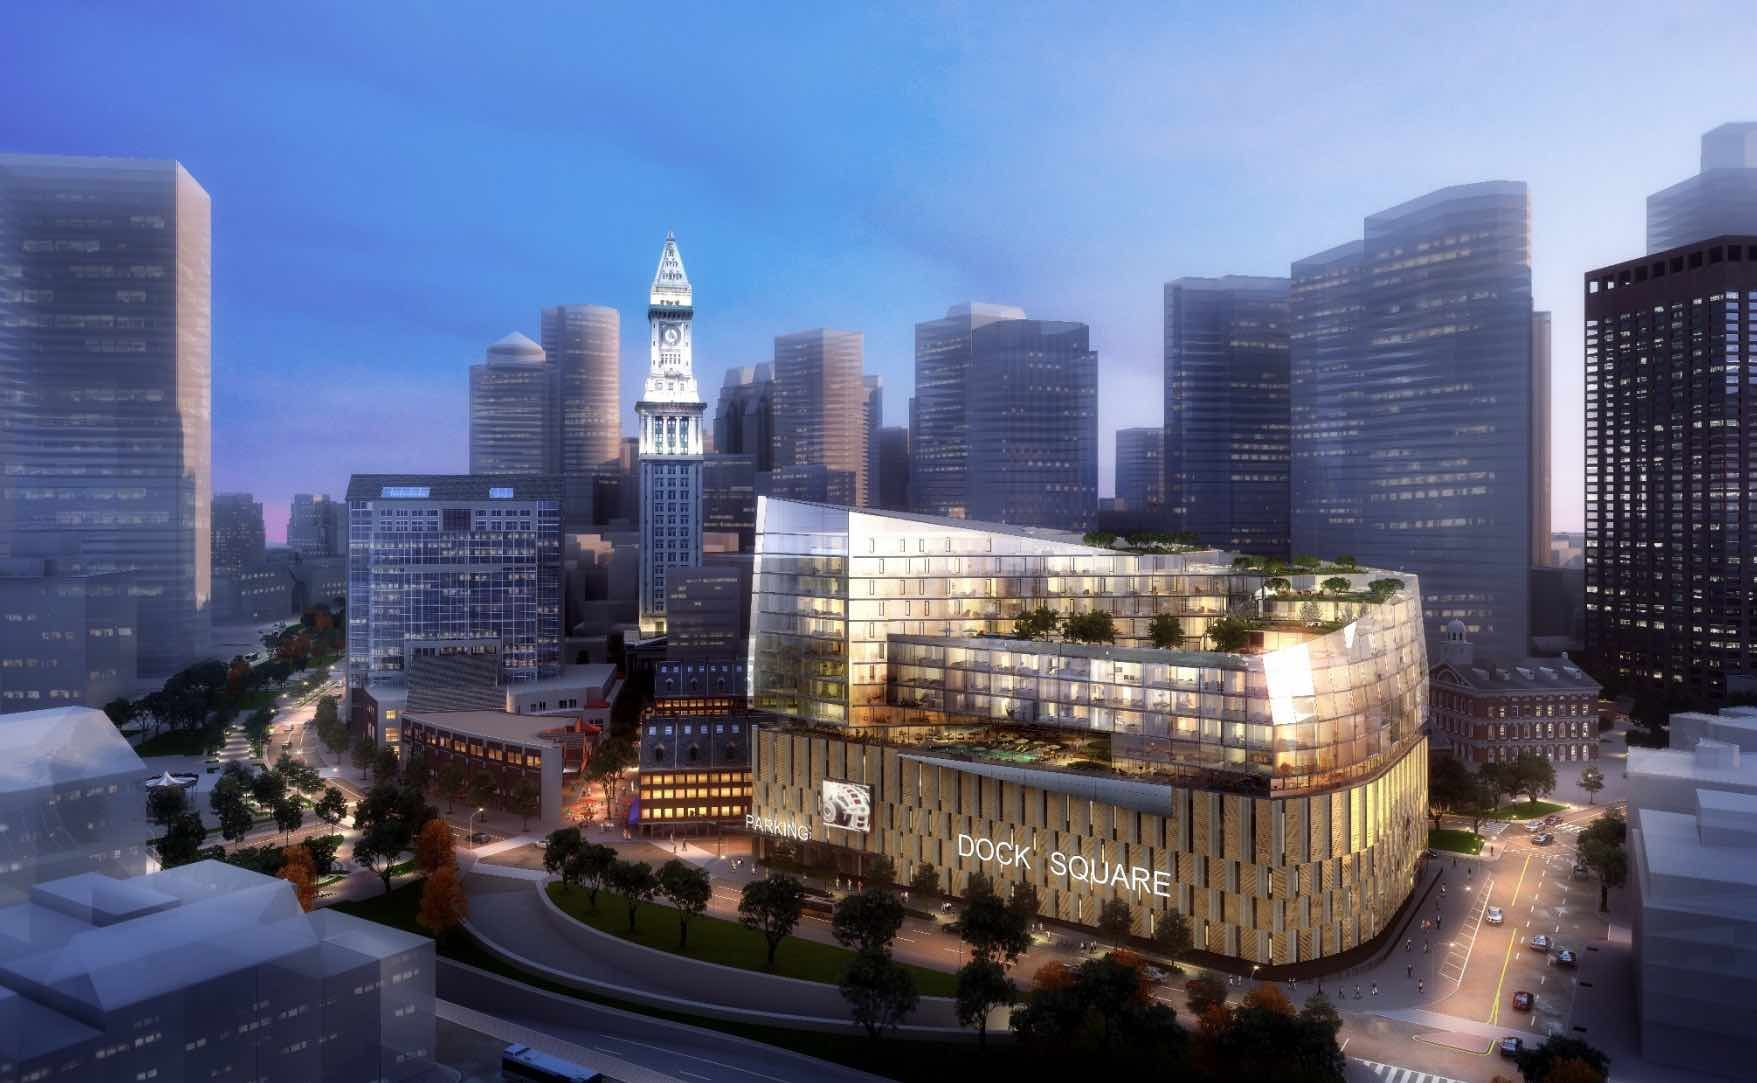 This Page Outlines The Expansion Details Of The Dock Square Parking Garage Dock Square Parking Garage Boston Real Estate Glass Facades Garage Interior